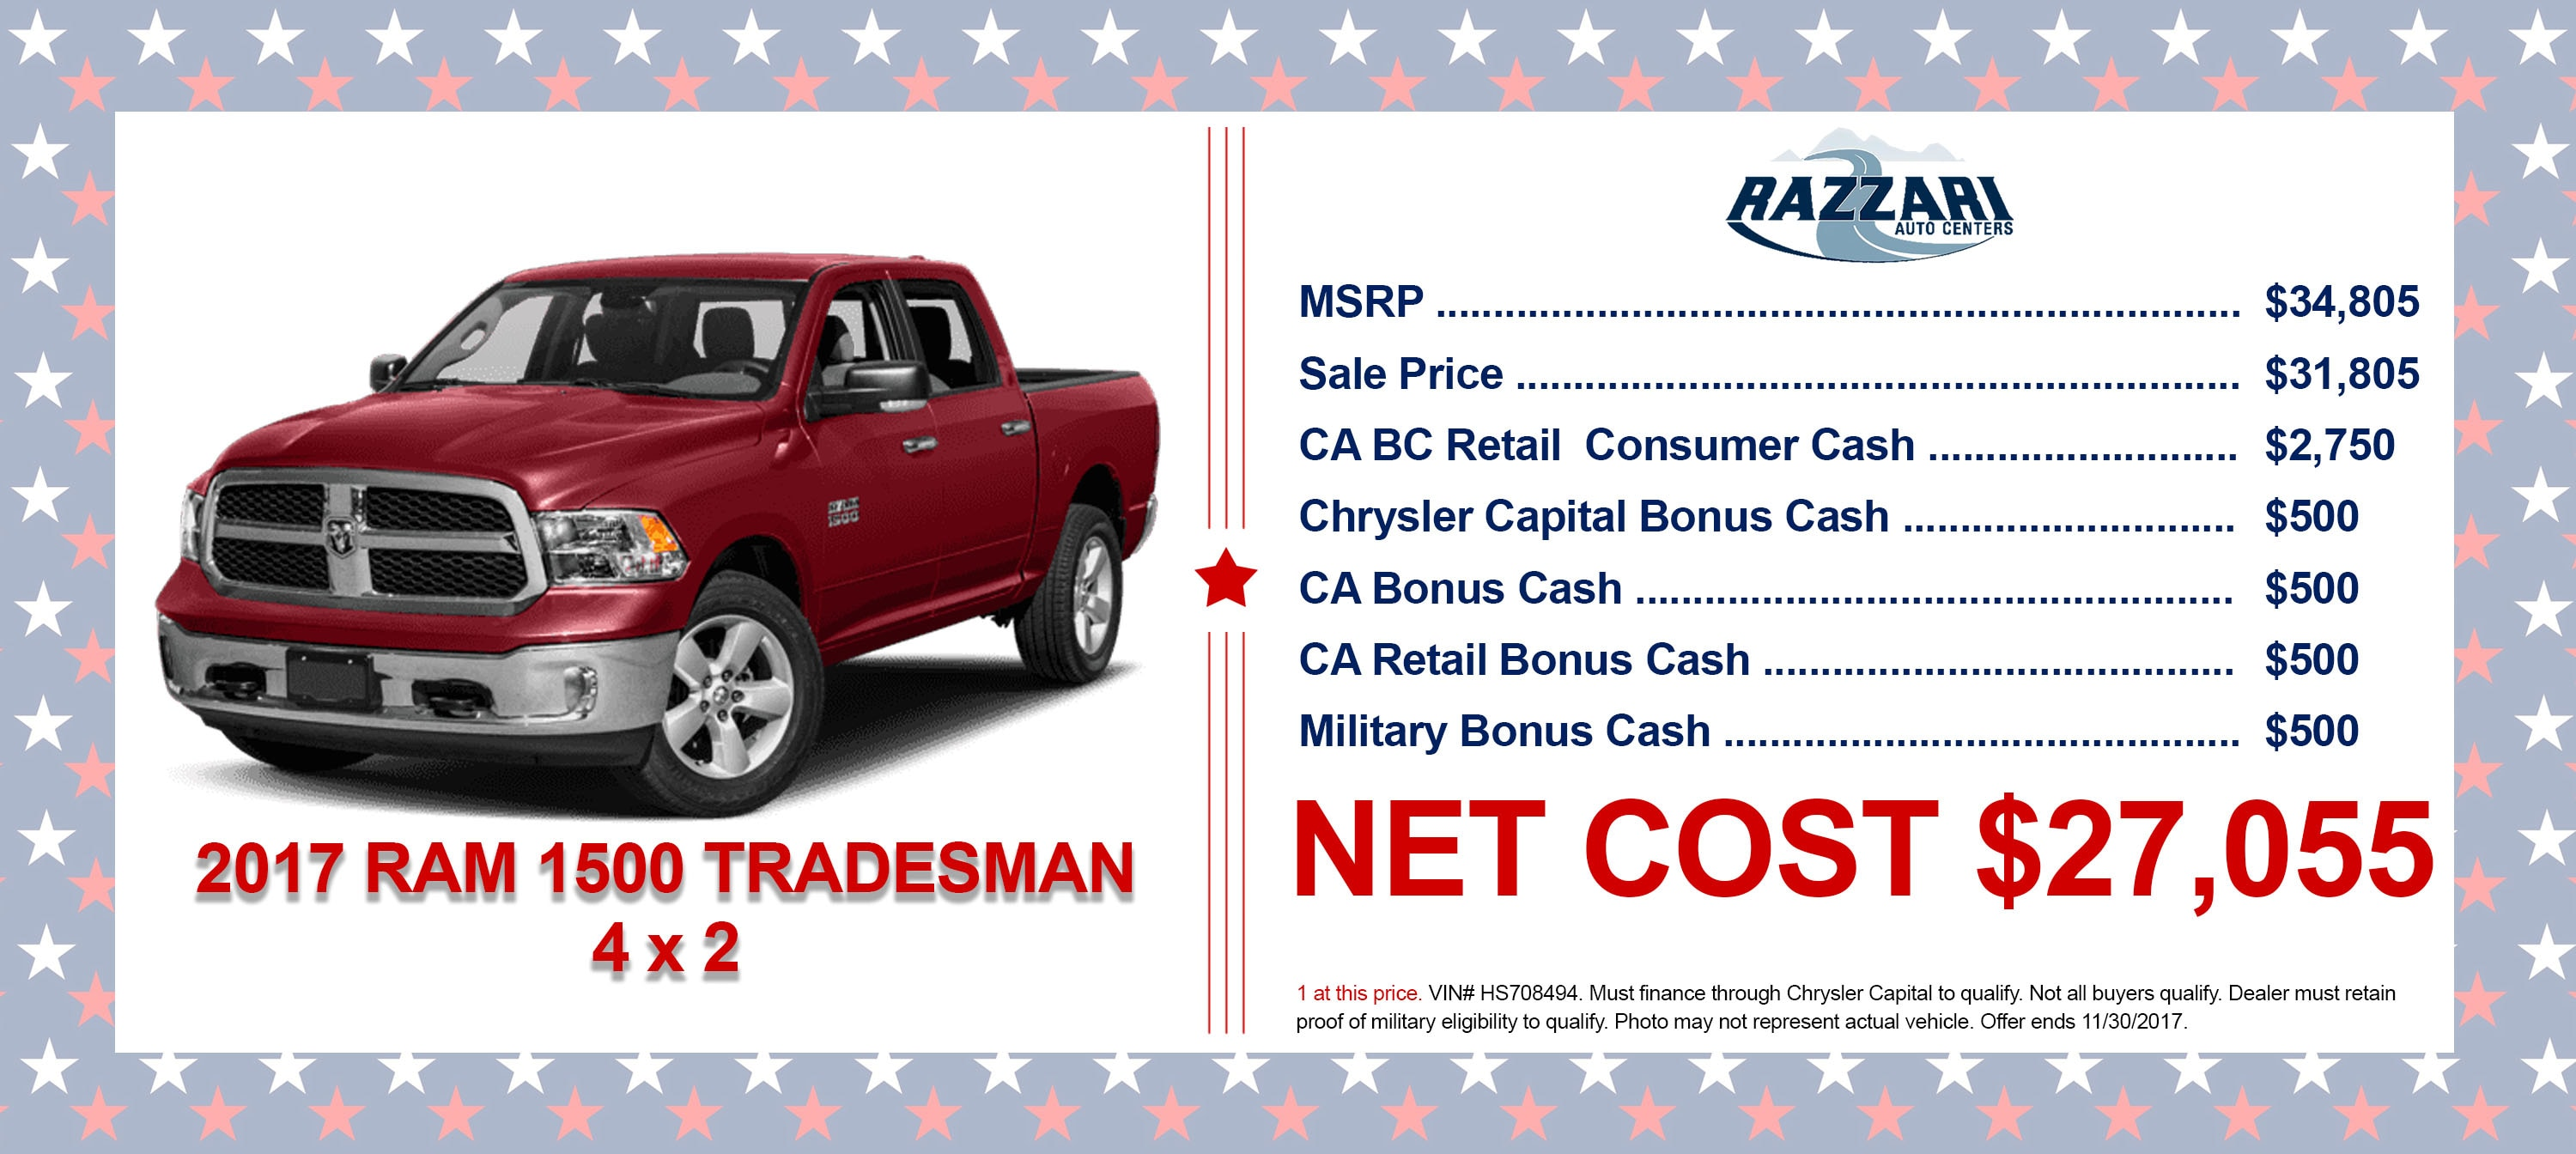 Razzari Chrysler Dodge Jeep Ram New Chrysler Dodge Jeep Ram - Chrysler capital bonus cash